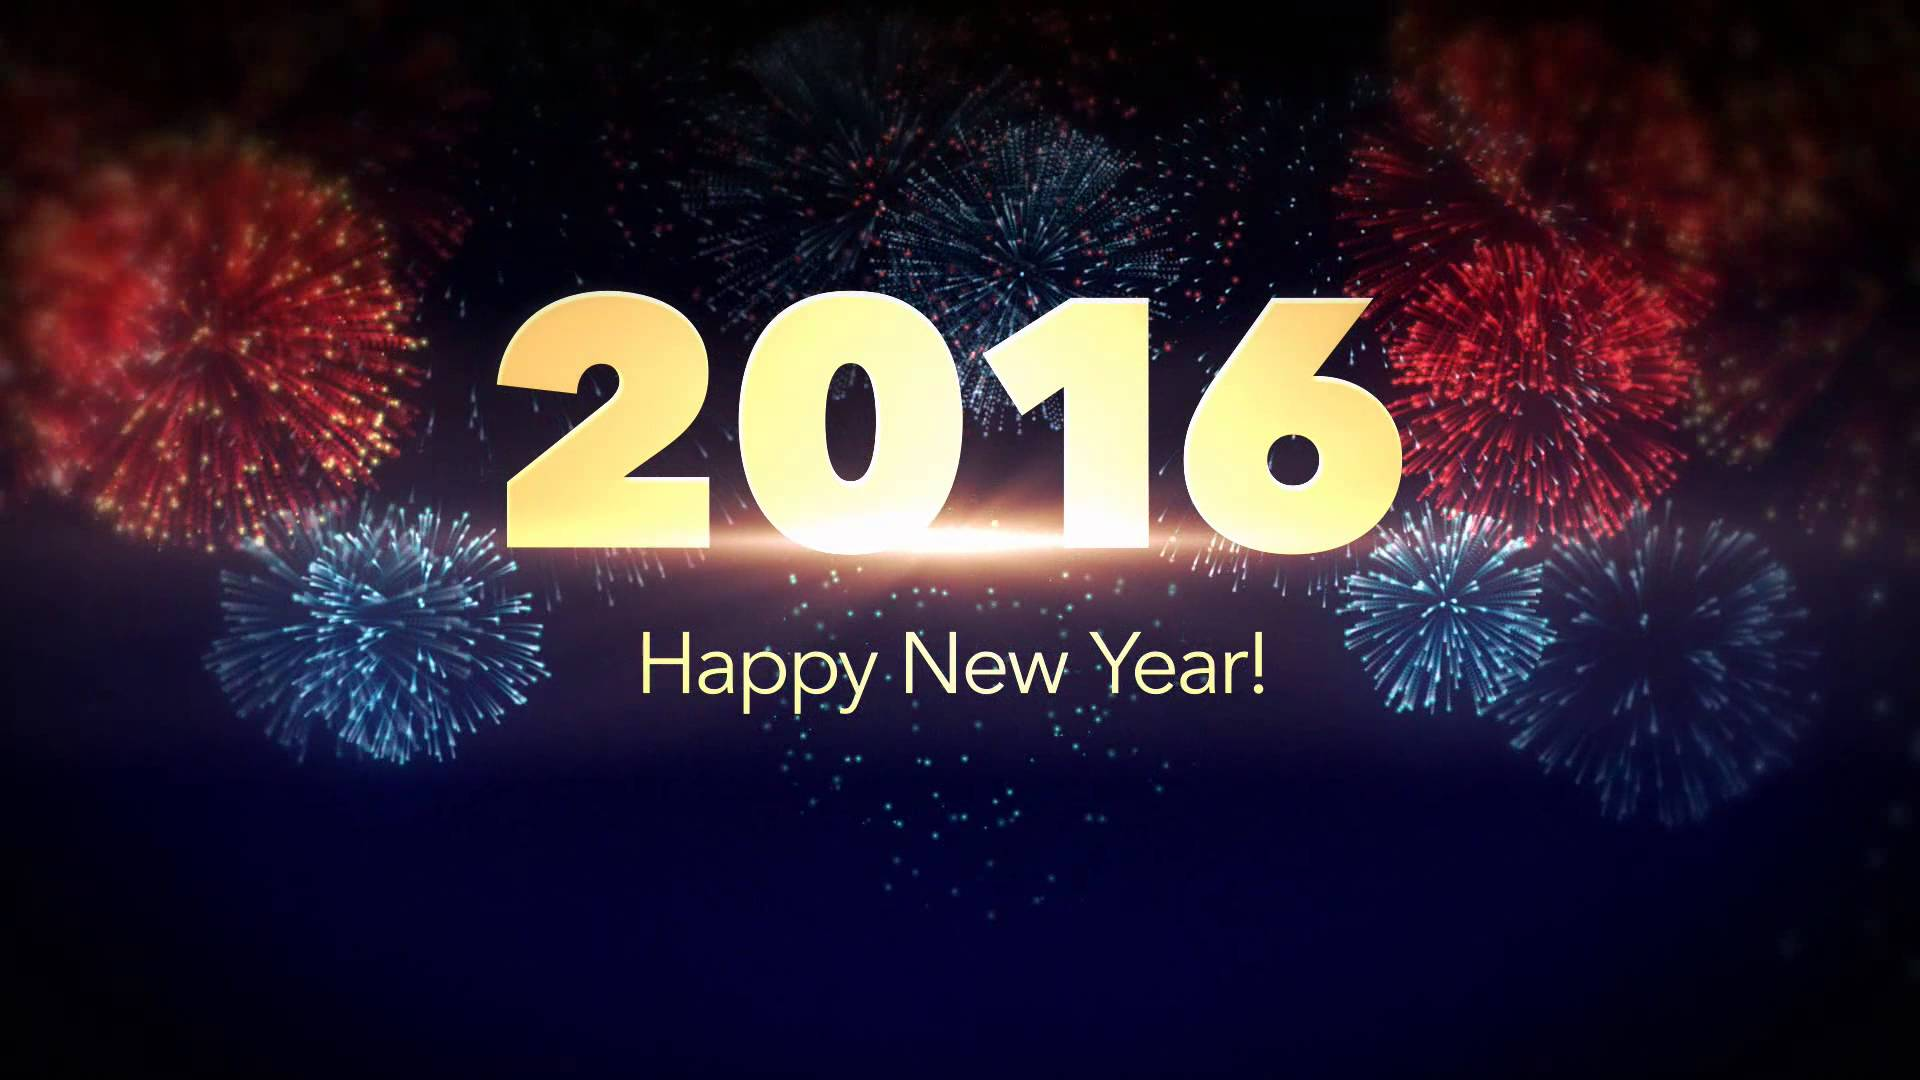 Download-Free-Happy-New-Year-2016-3D-Wallpapers-1